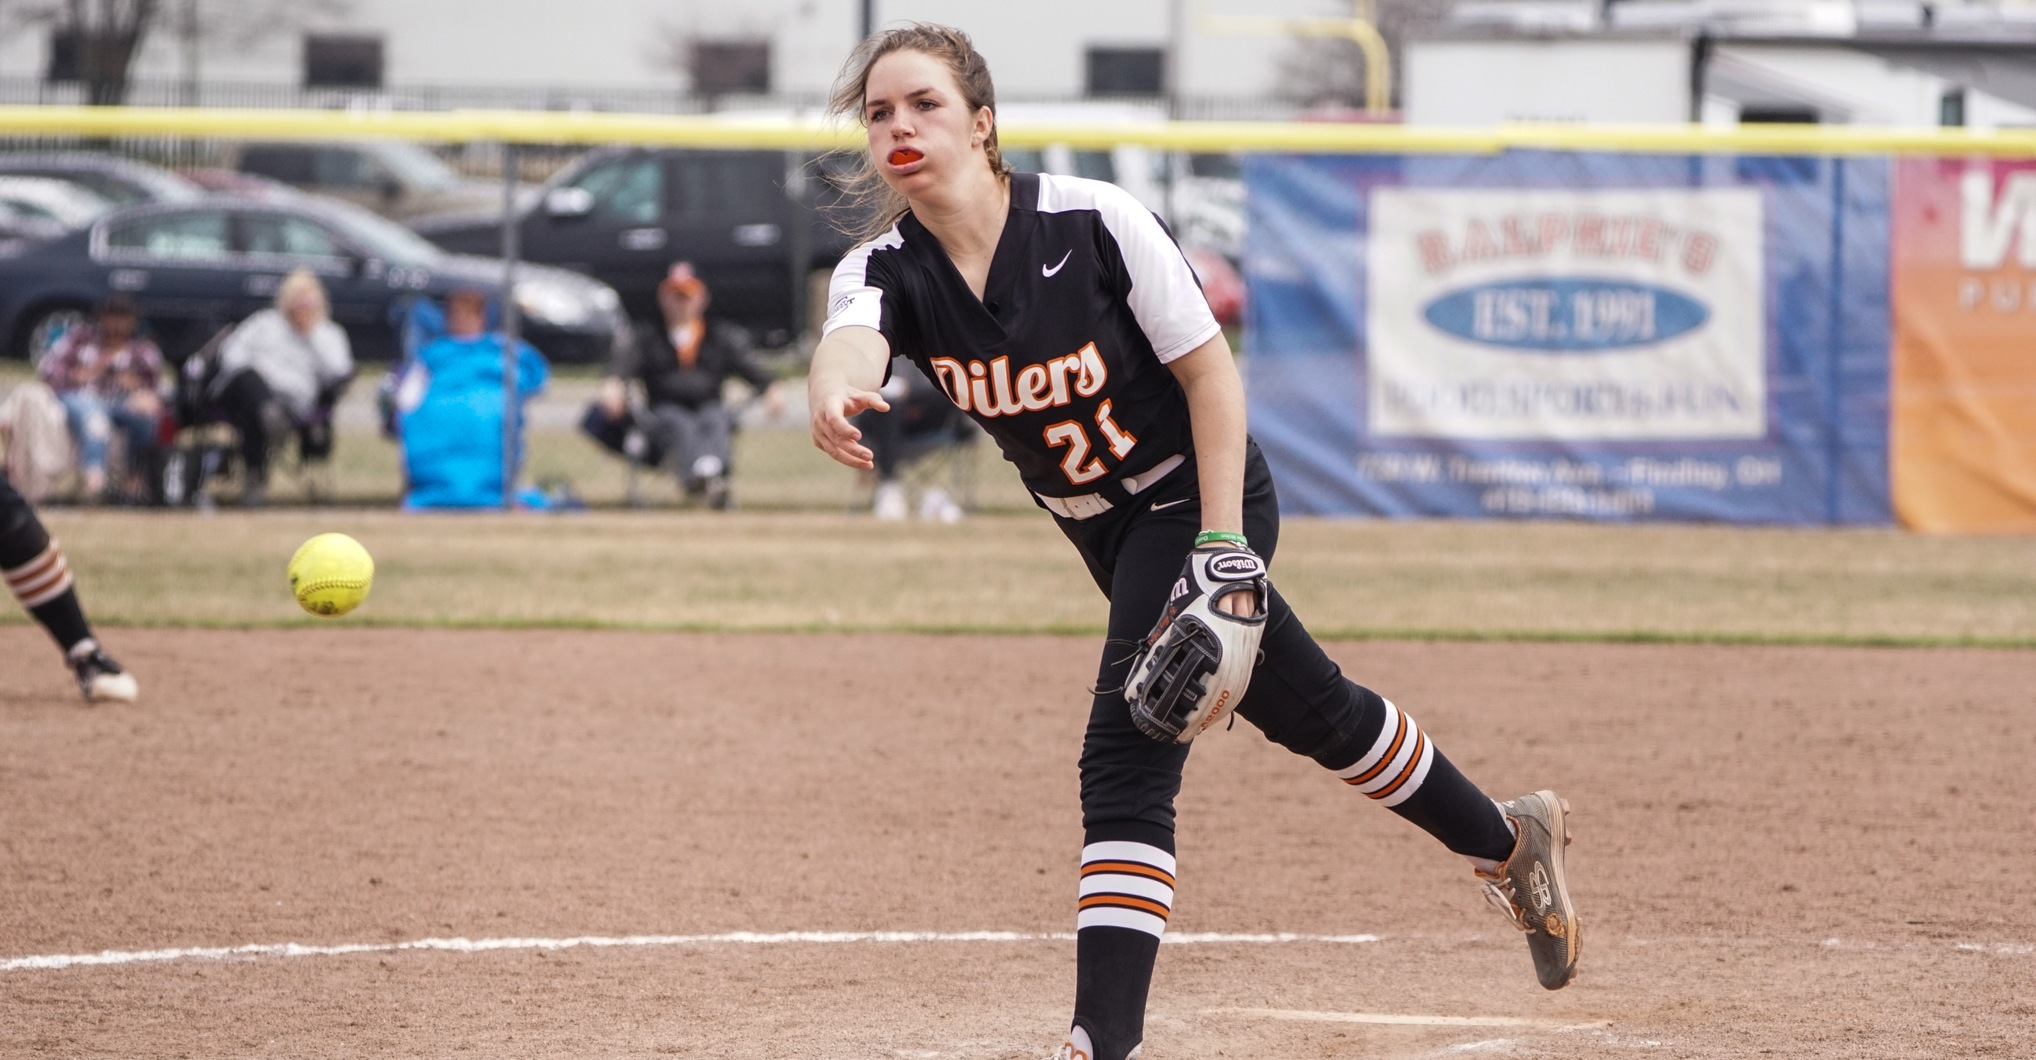 Oilers Softball Splits on Sunday